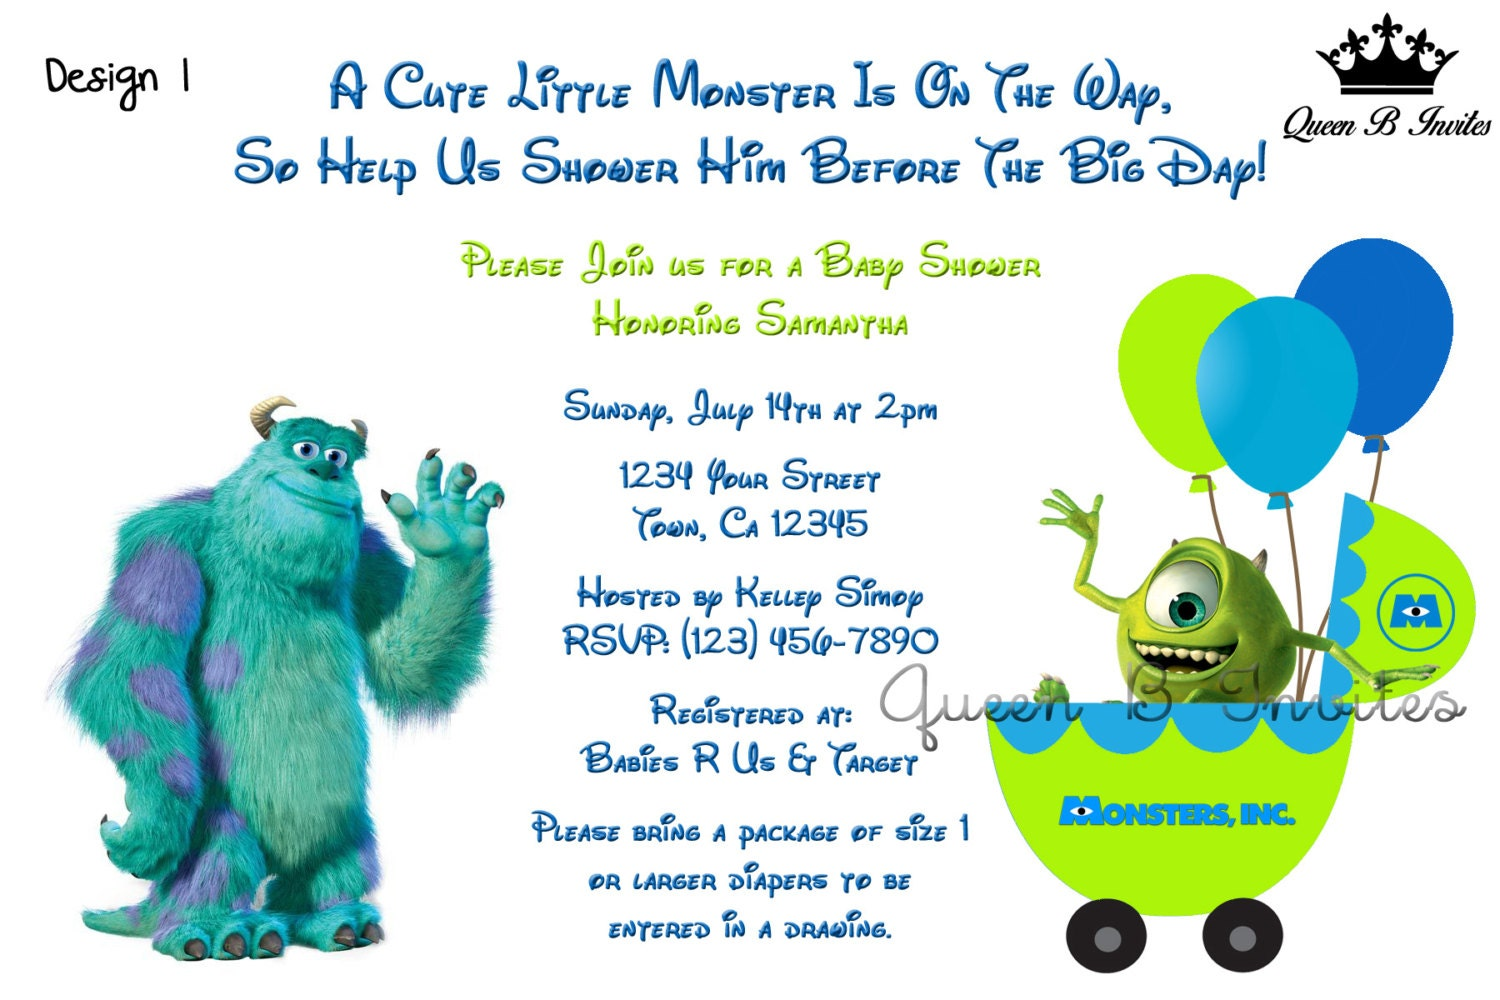 Monsters inc baby shower invitations home design ideas monsters inc baby shower invitation digital file free thank filmwisefo